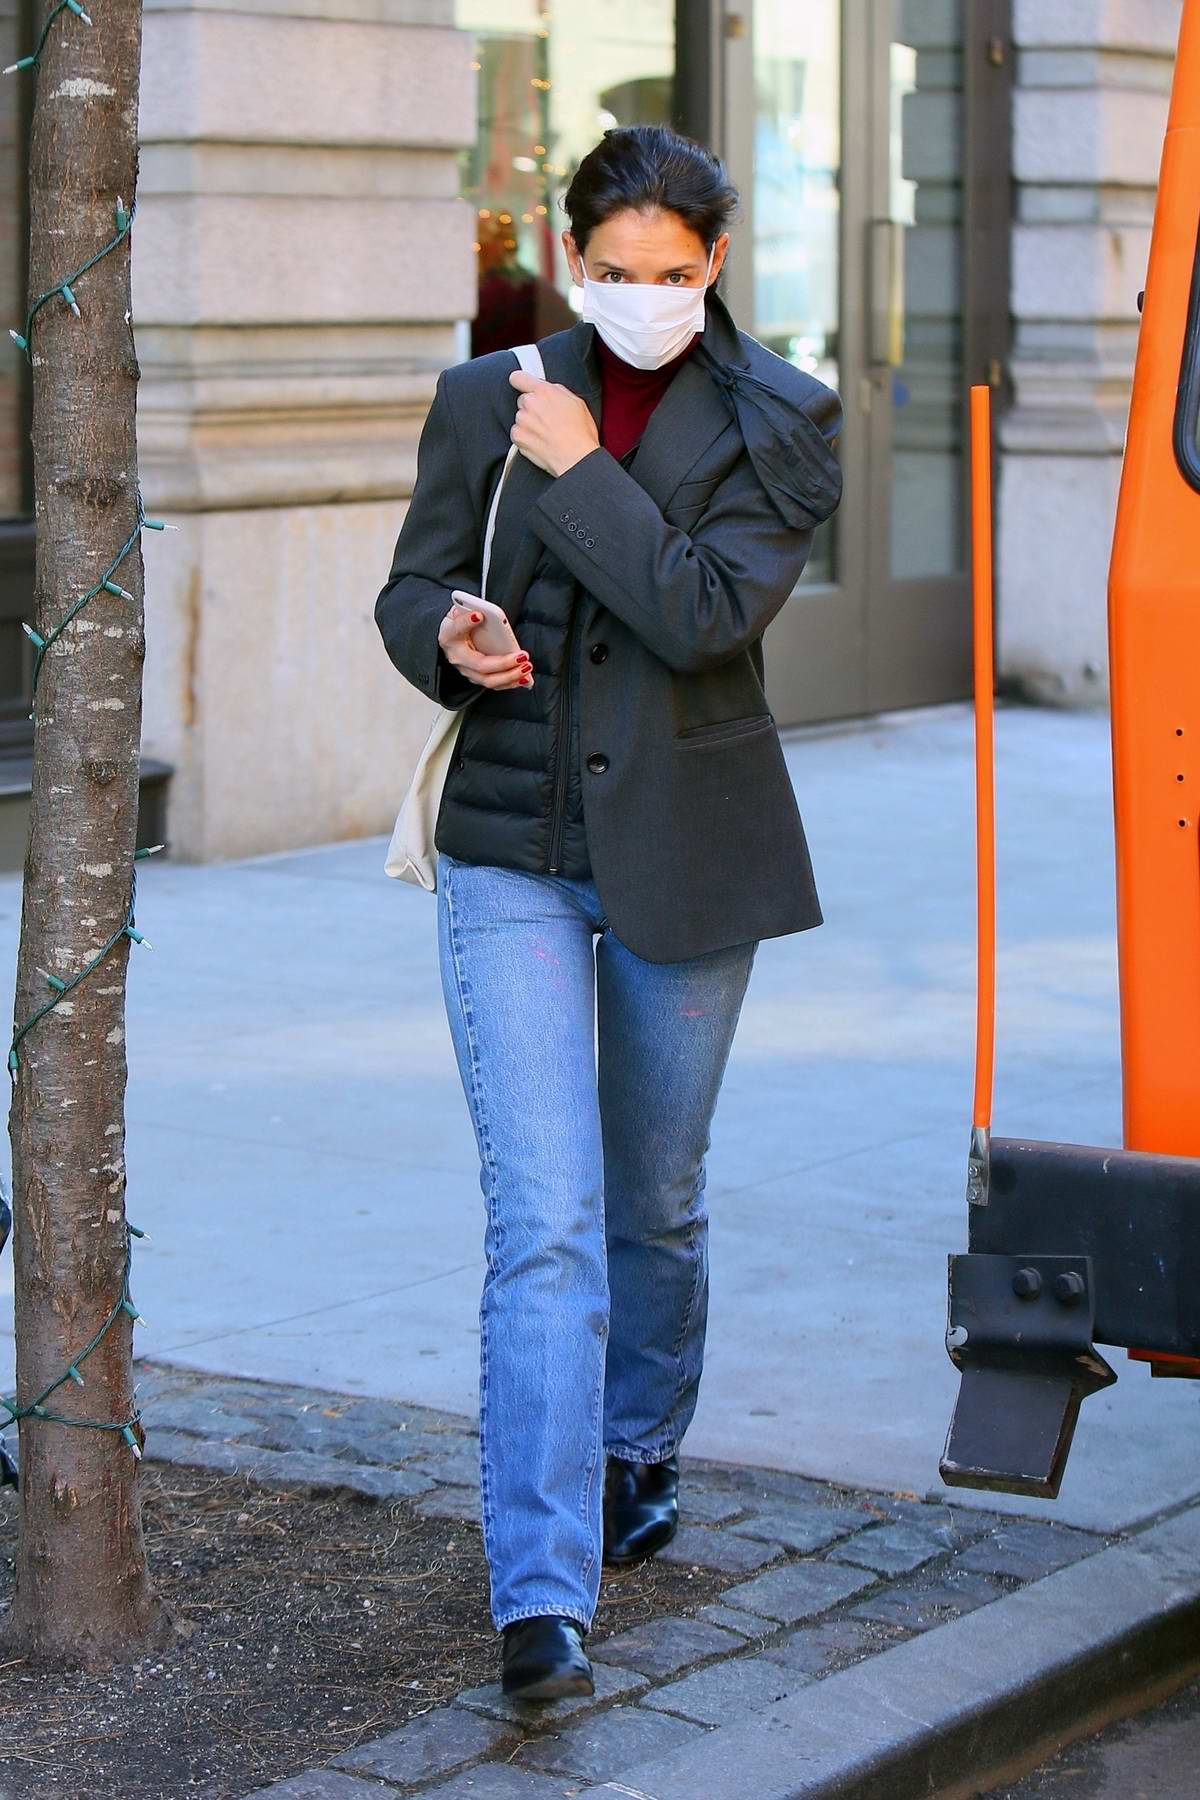 Katie Holmes wears a grey blazer over a puffer jacket while out catching an Uber in Soho, New York City